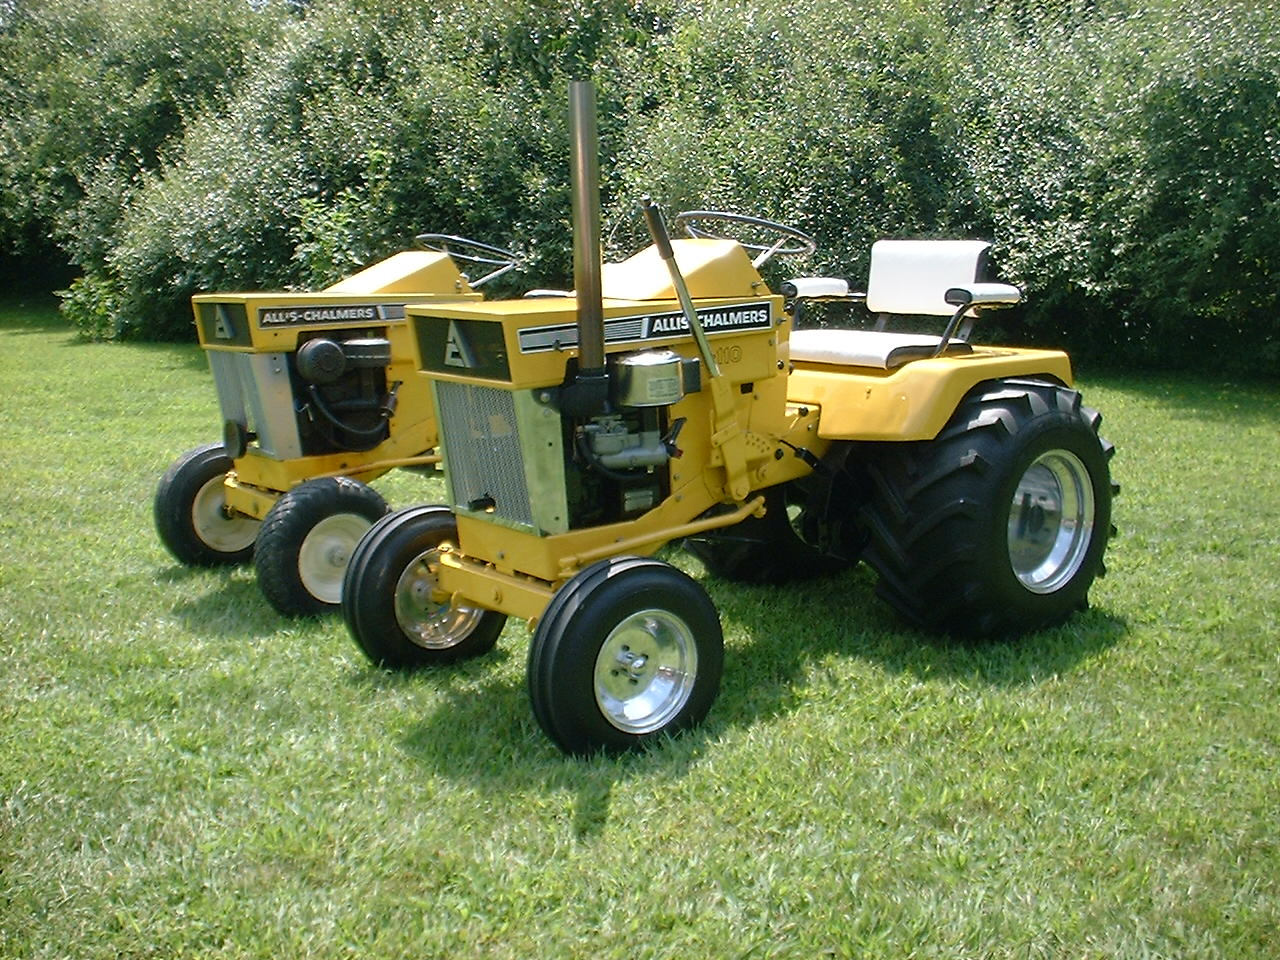 Allis Chalmers B110 Lets see some lawn and garden equipment ...